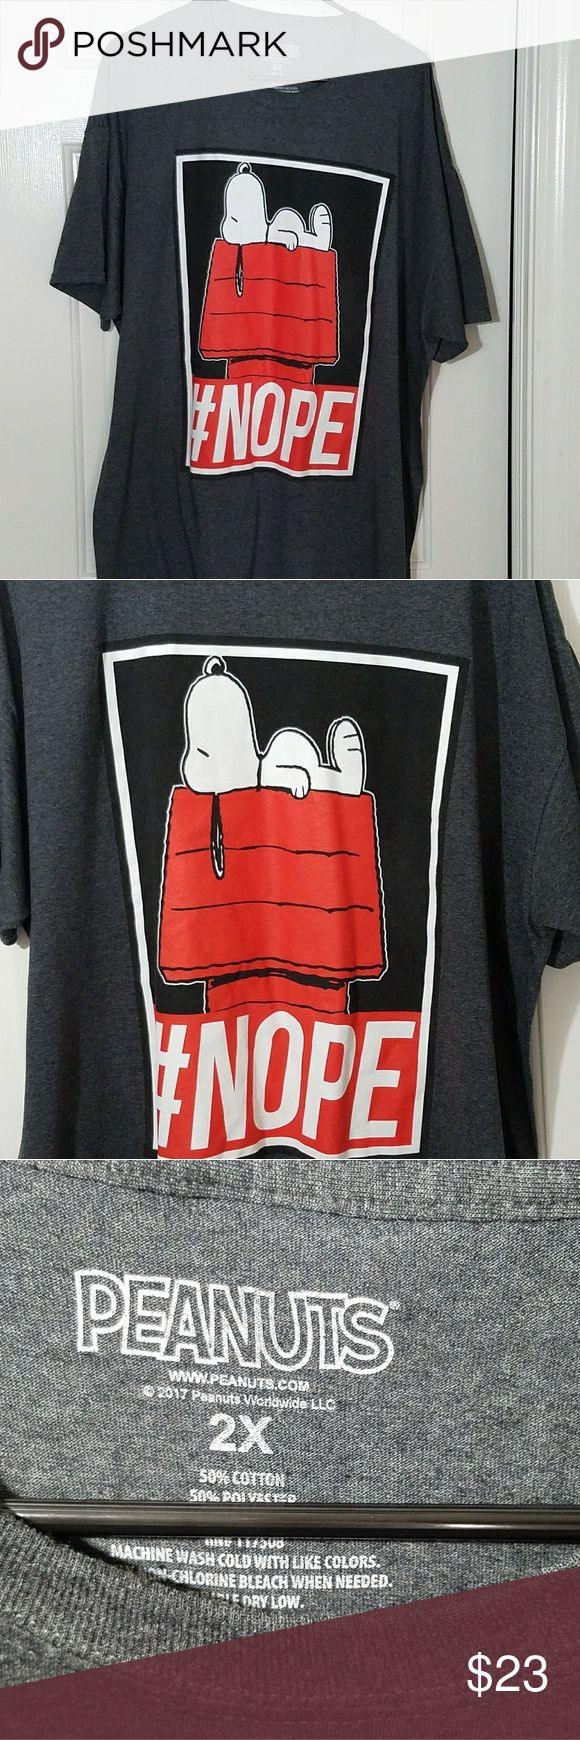 Snoopy Black Tee Shirt Dog House Pre-owned inspected thoroughly found no major issues did see slight minimum fade on art barely can see. This is a Peanuts brand graphic style short sleeve t-shirt black red white 2XL size cotton blend material. Peanuts Shirts Tees - Short Sleeve